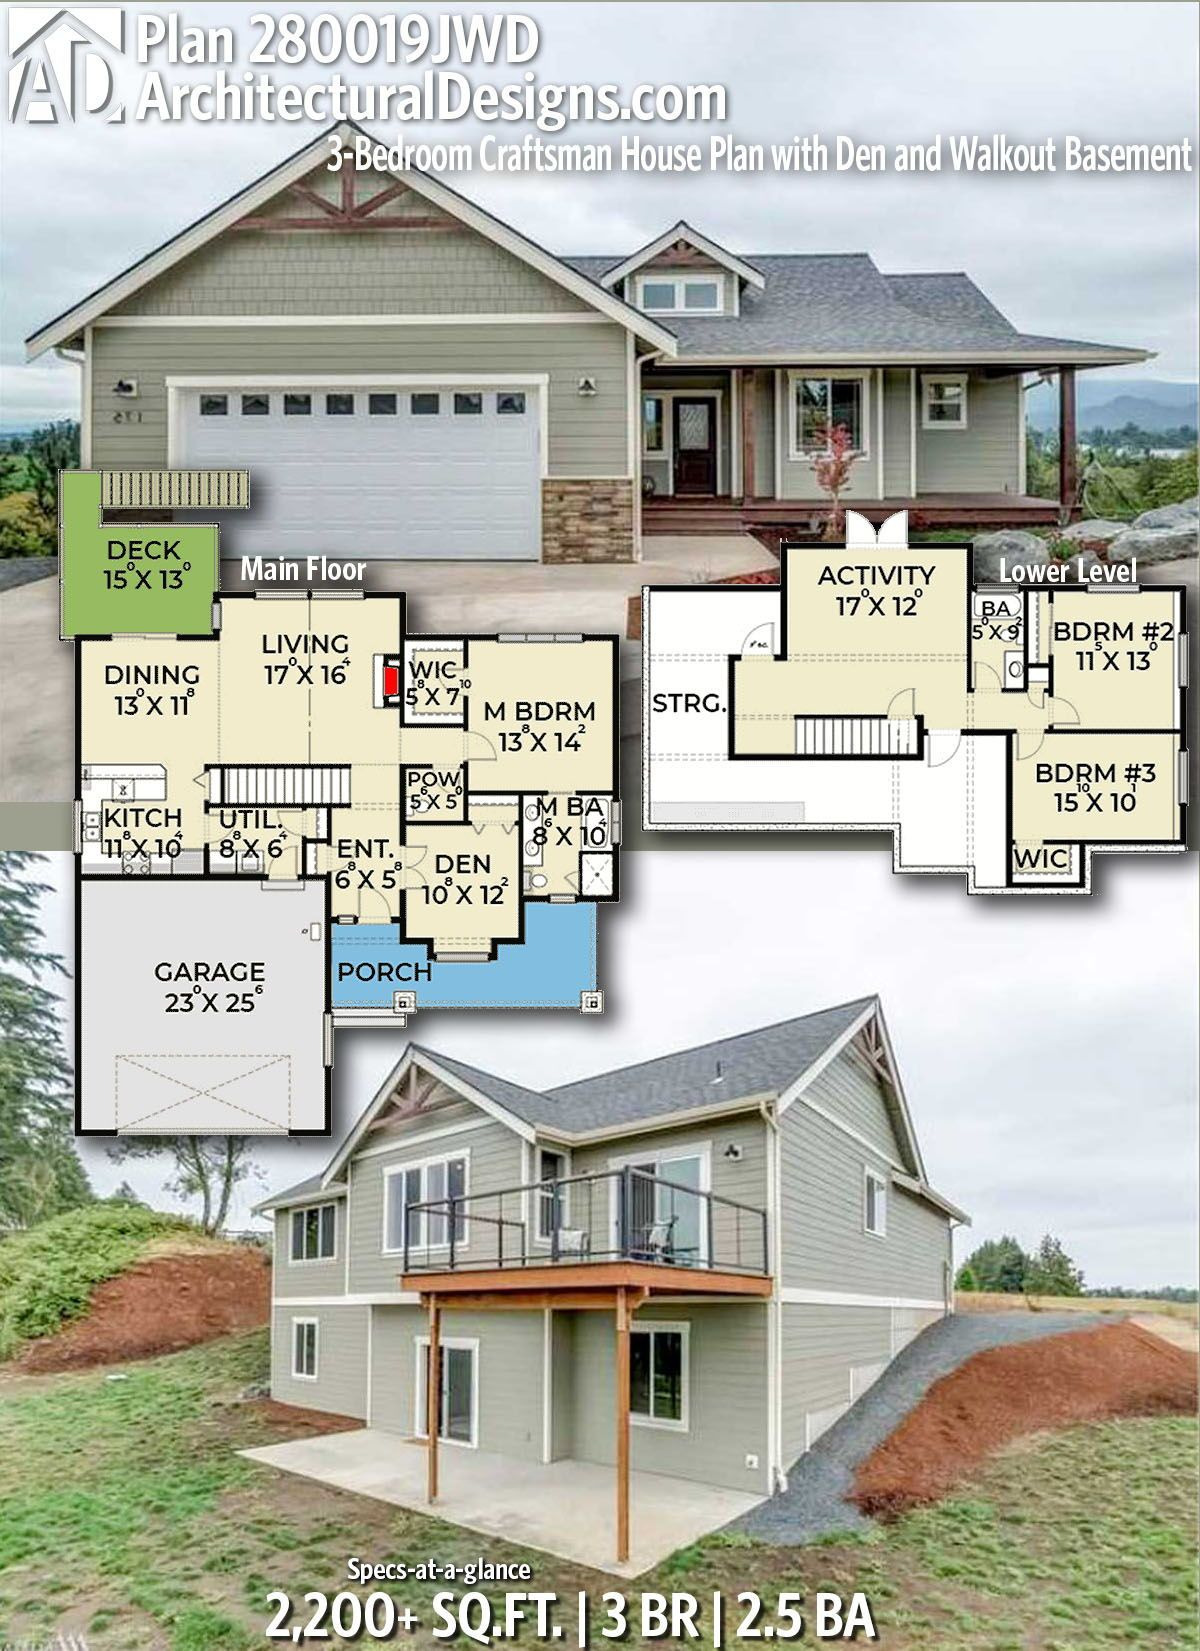 Timber Frame House Plans with Walkout Basement Beautiful Plan Jwd 3 Bedroom Craftsman House Plan with Den and